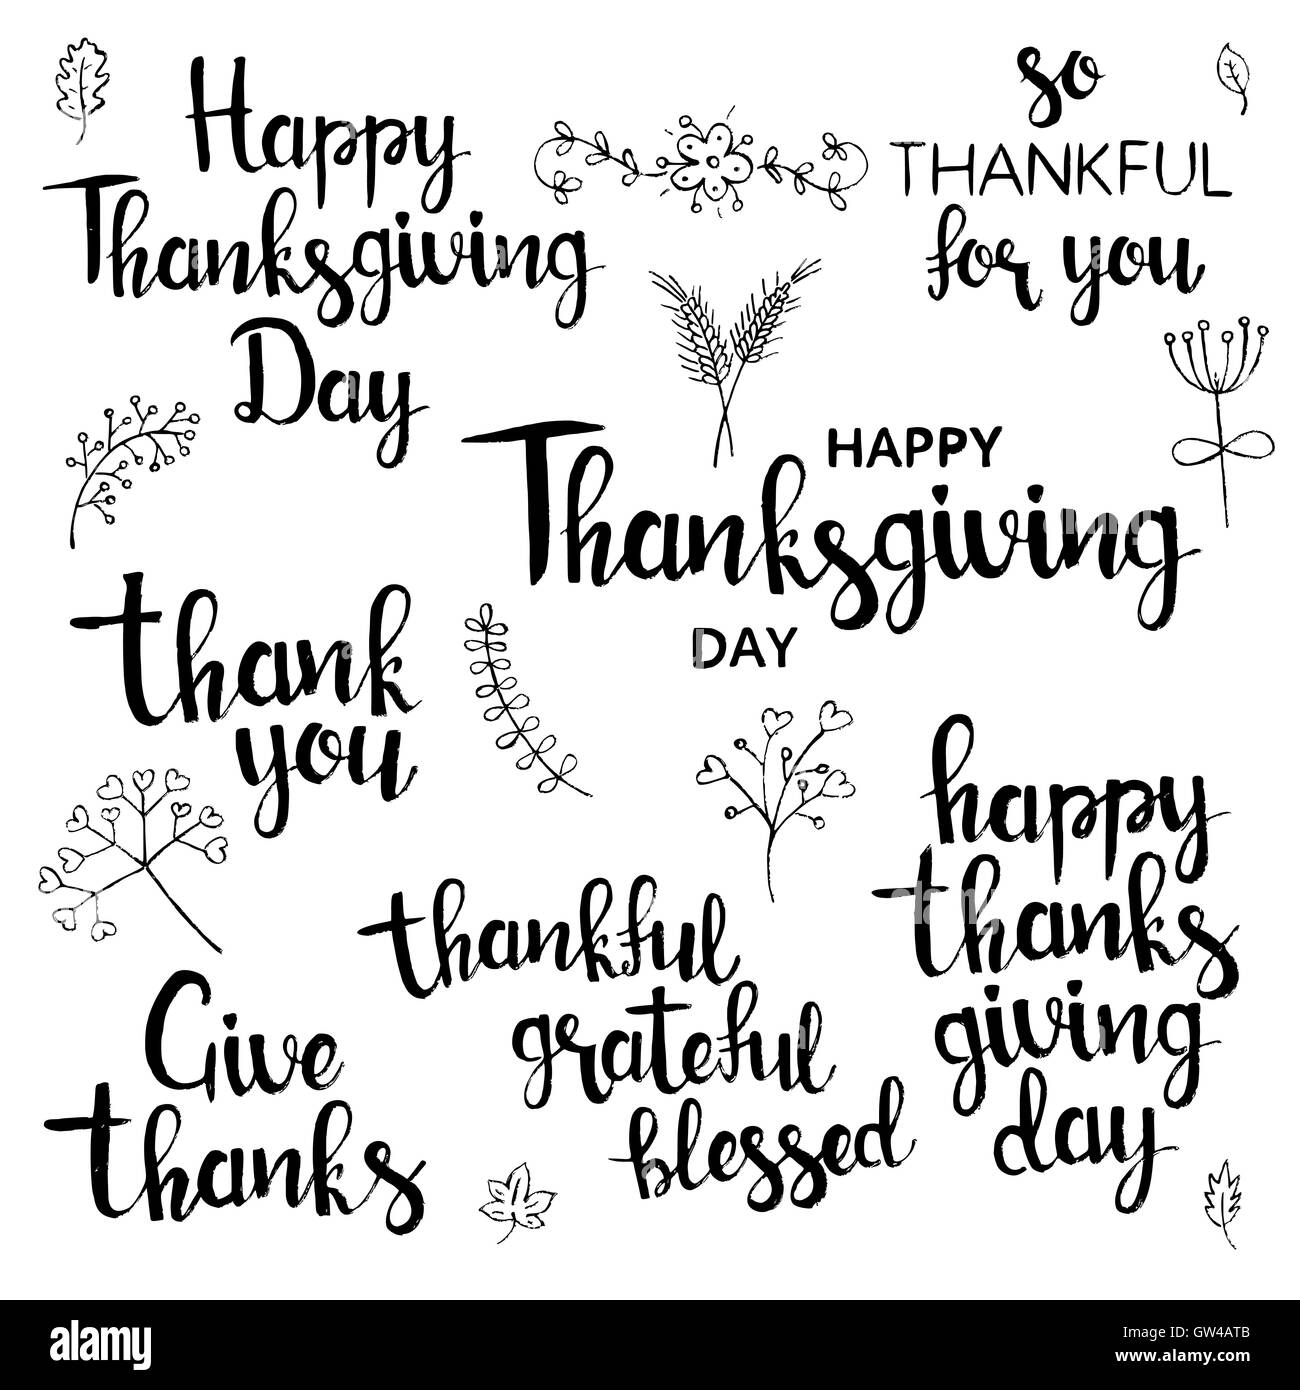 Happy Thanksgiving Day Lettering Set Modern Vector Hand Drawn Calligraphy With Wheat Flowers Leaves Branches And Berries